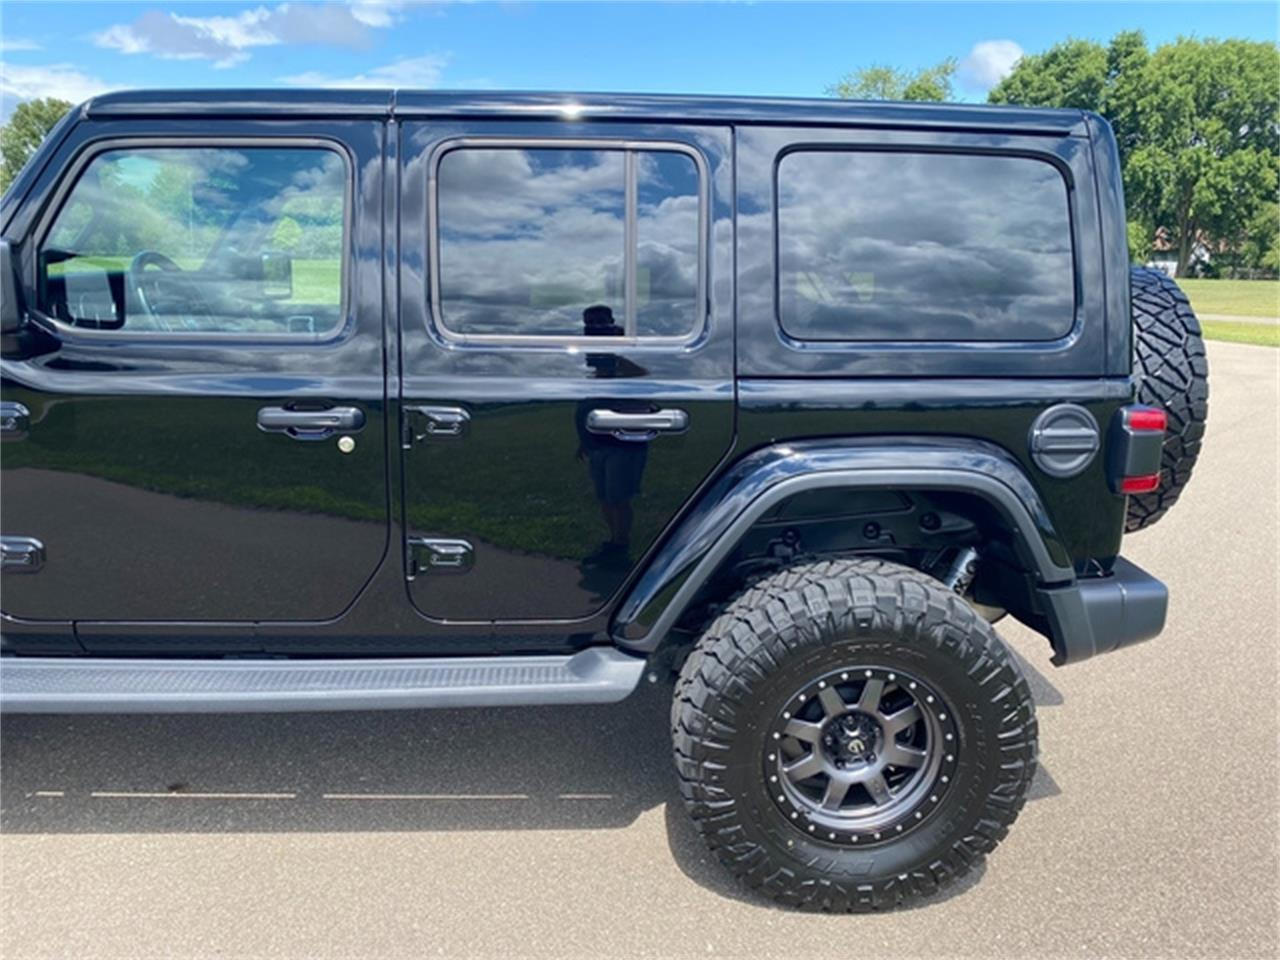 2019 Jeep Wrangler (CC-1379288) for sale in Shelby Township, Michigan